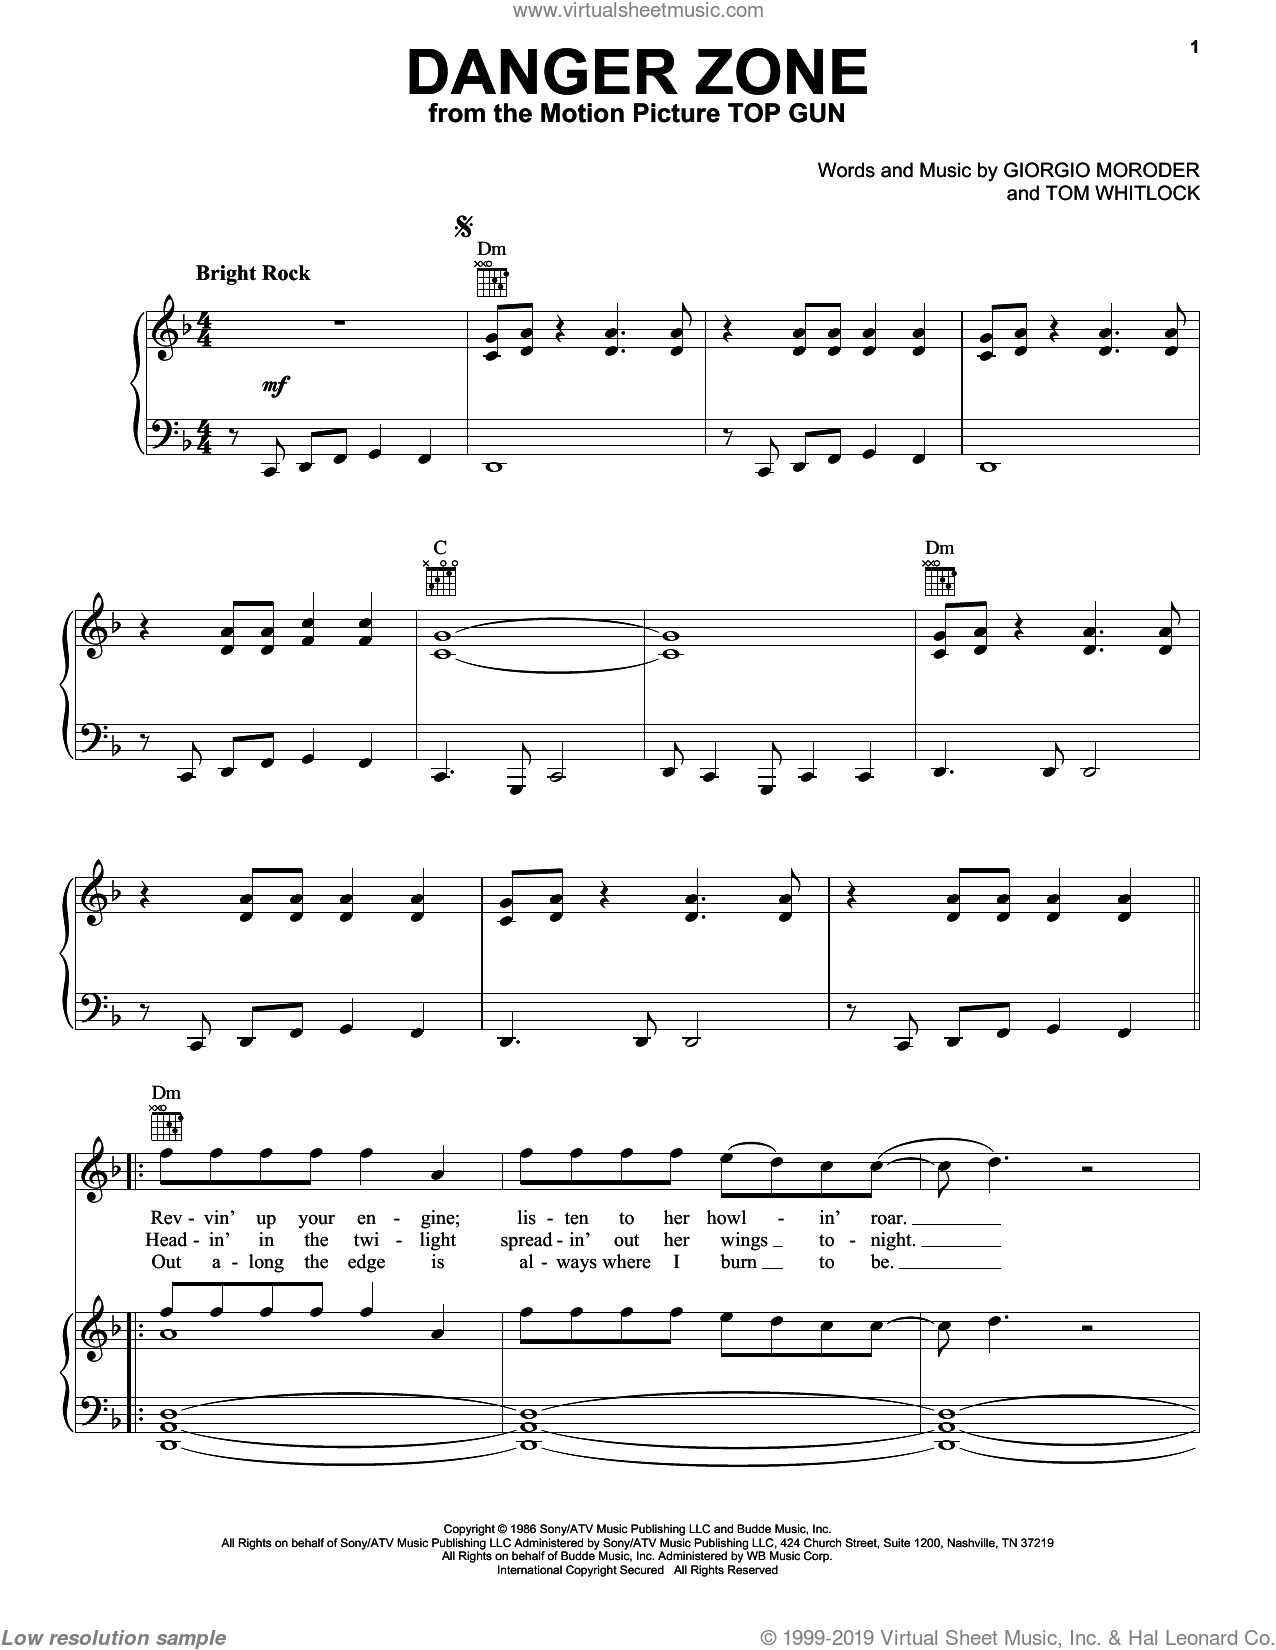 Danger Zone sheet music for voice, piano or guitar by Tom Whitlock